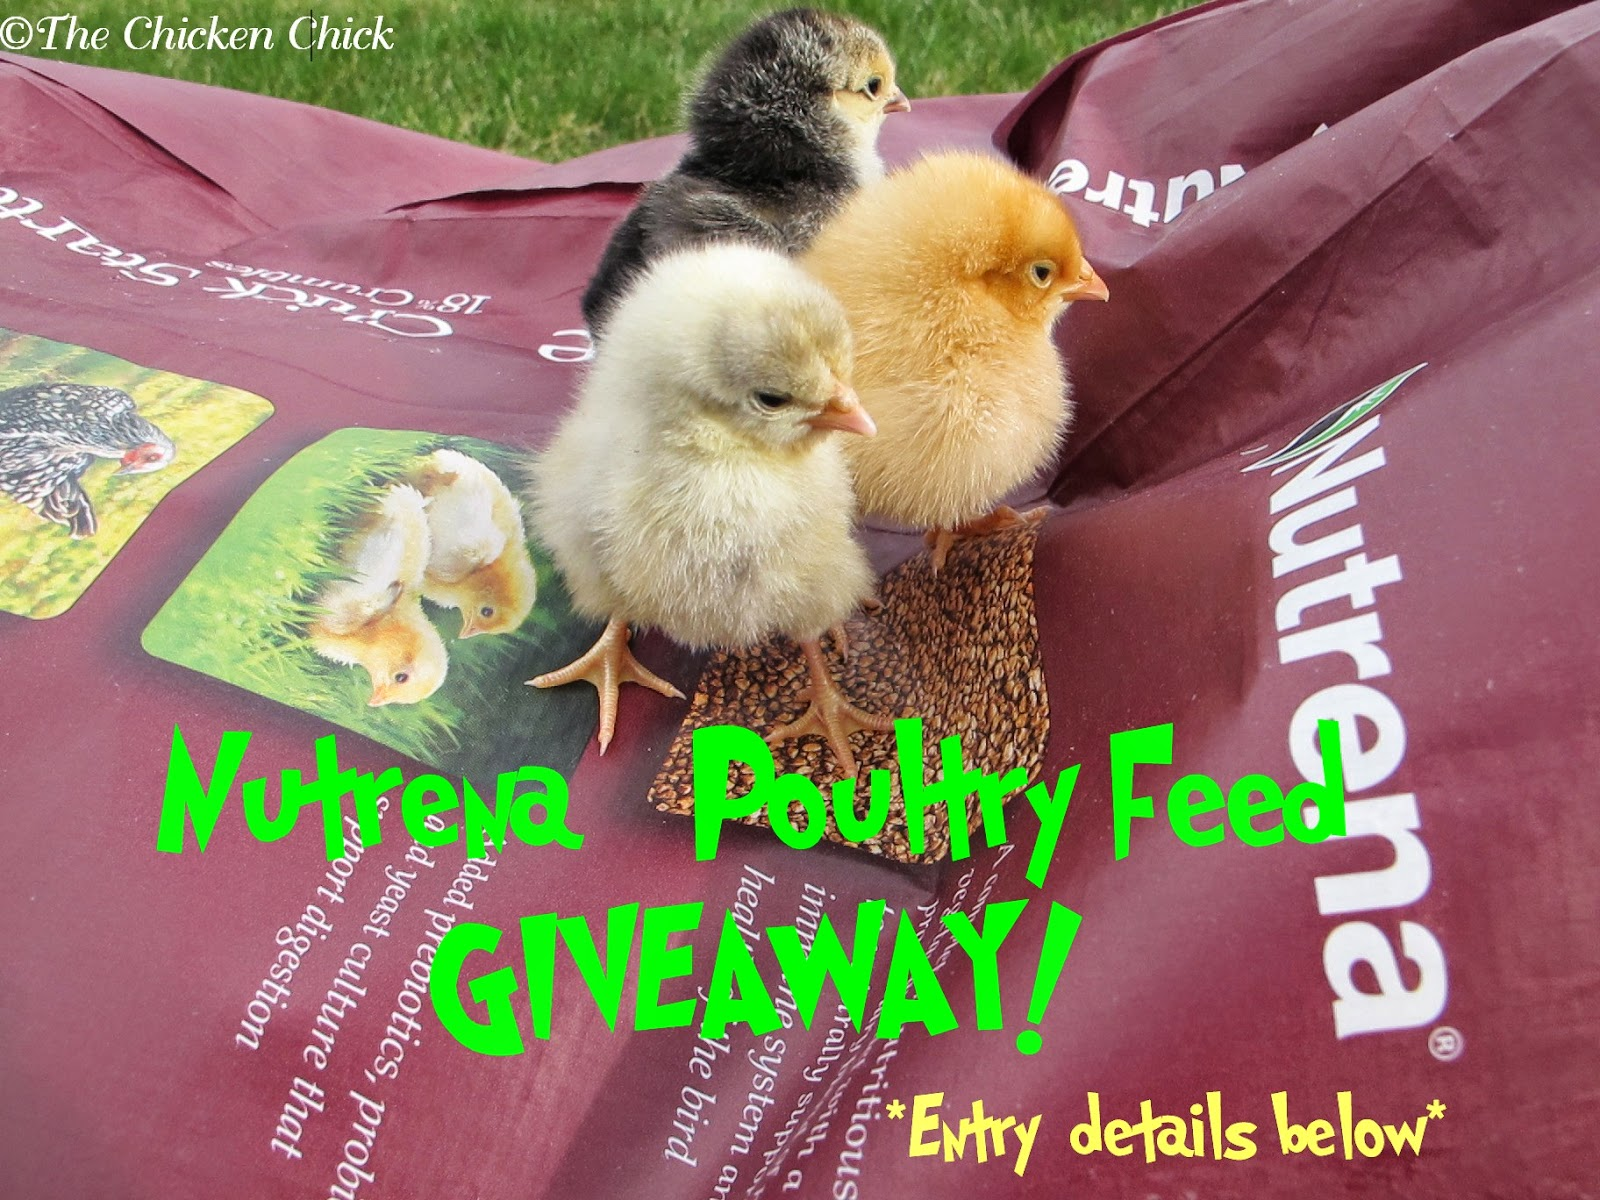 Nutrena Poultry Feed Giveaway at The Chicken Chick®